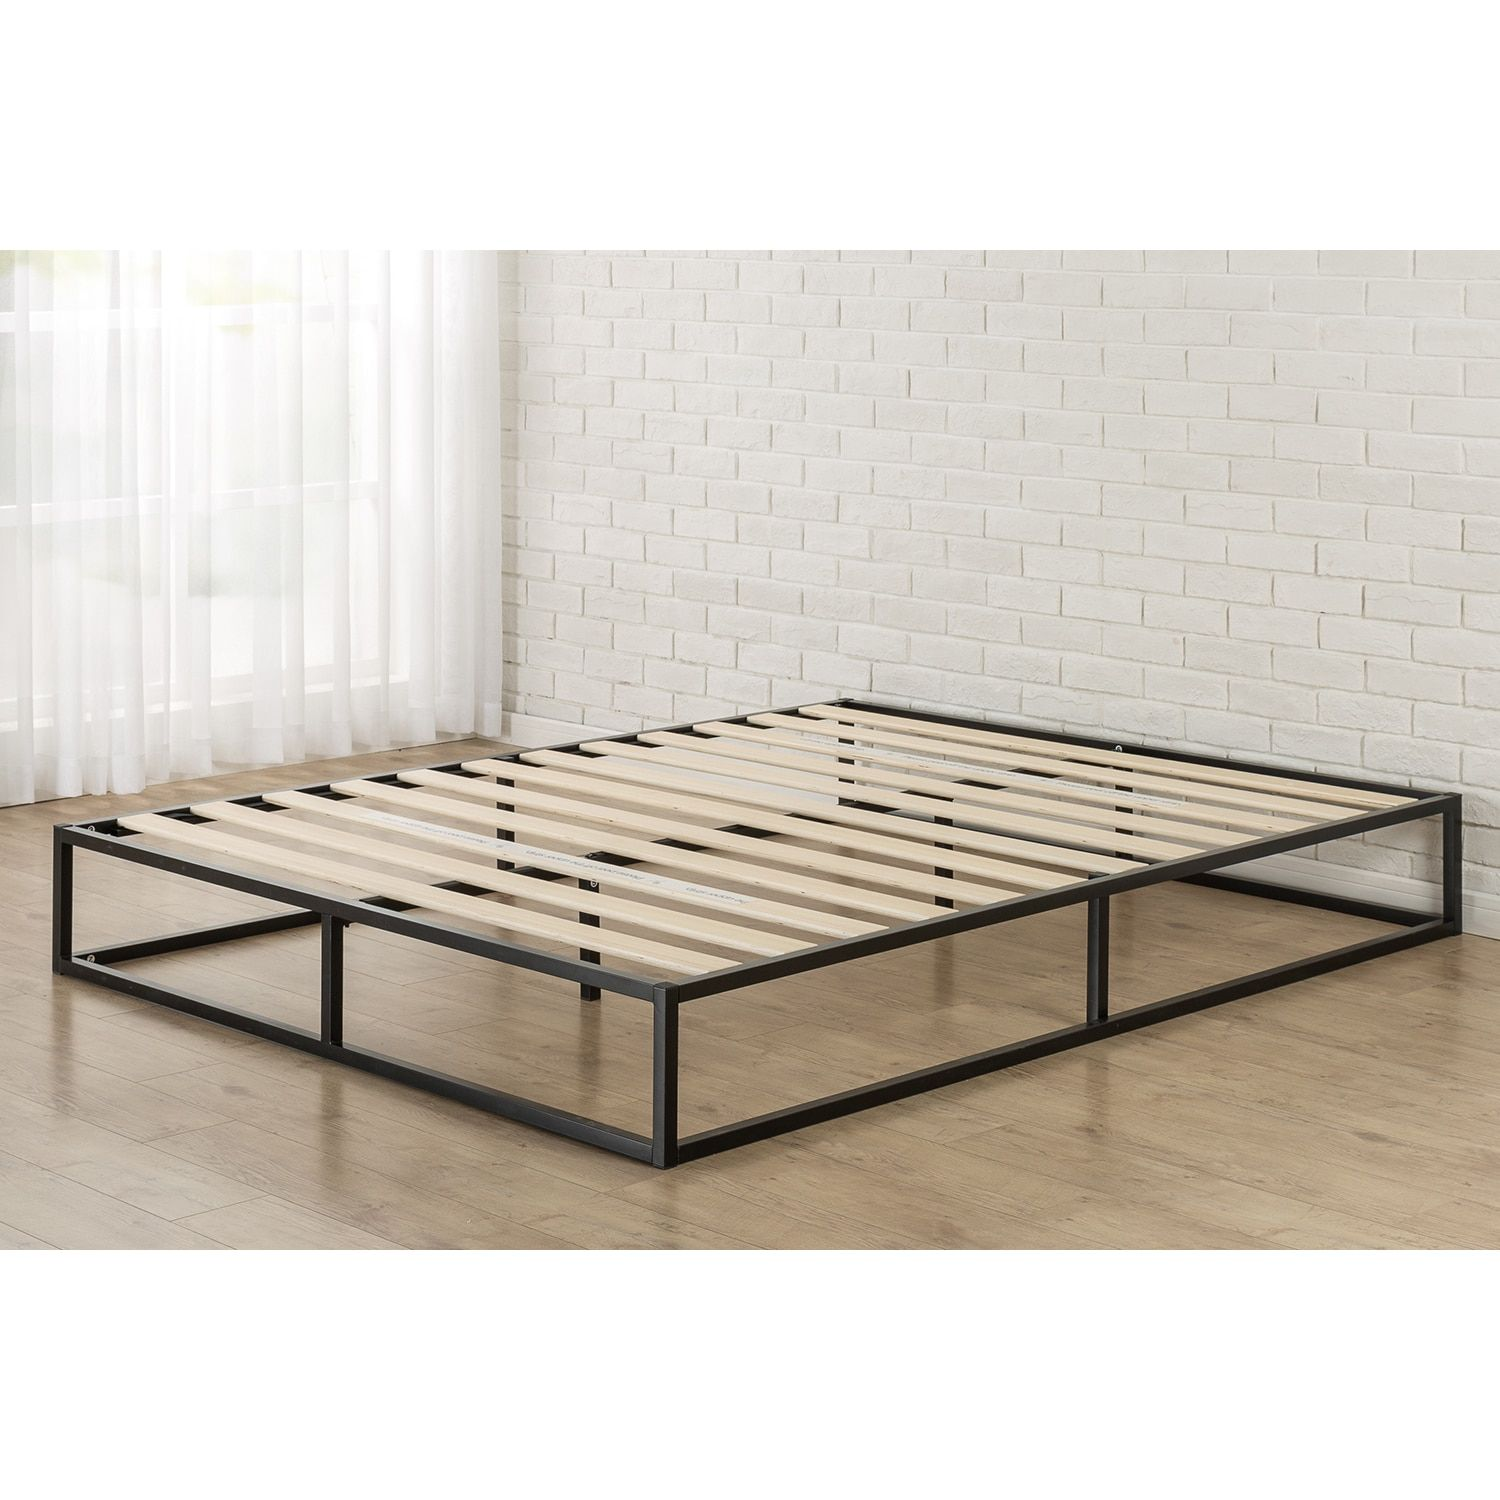 step dp shore south kitchen platform amazon frame bed com black one pure dining collection full